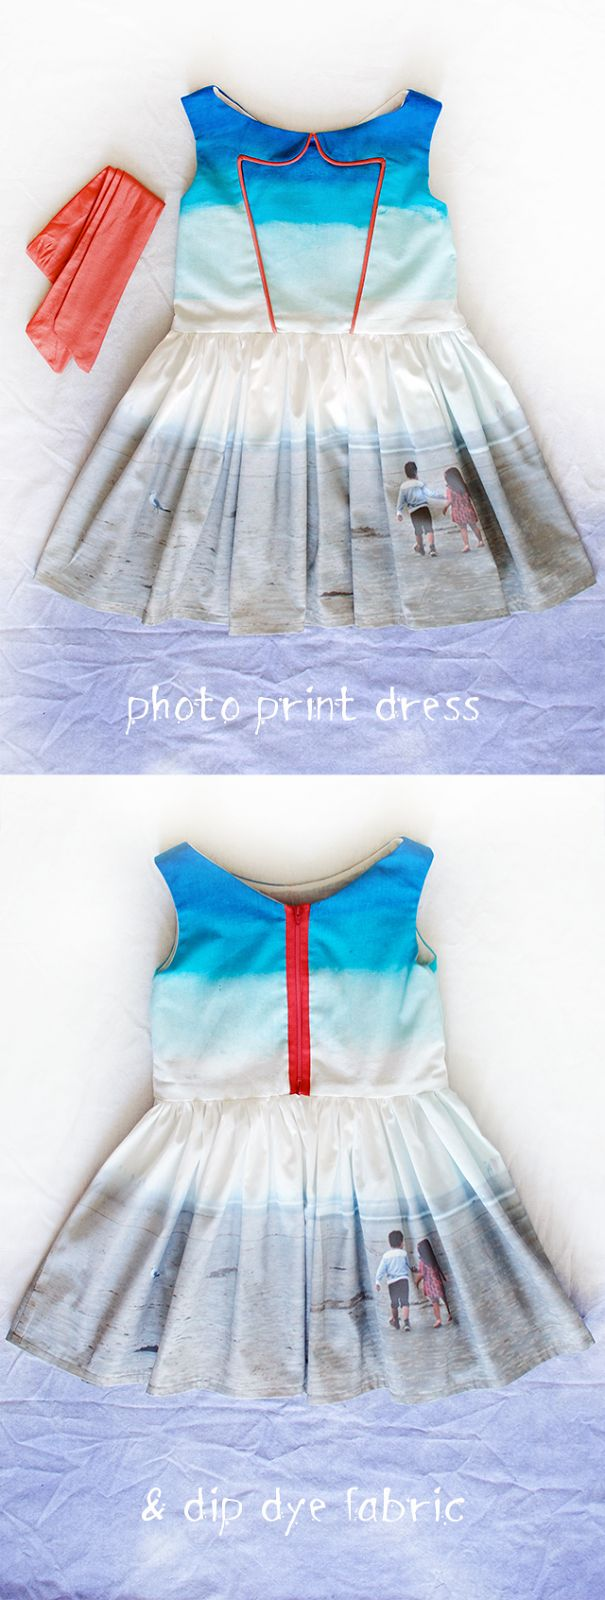 petit à petit and family: Project Run & Play (like Project Runway for bloggers): One of a Kind Fabric Challenge - click to vote for this amazing design!